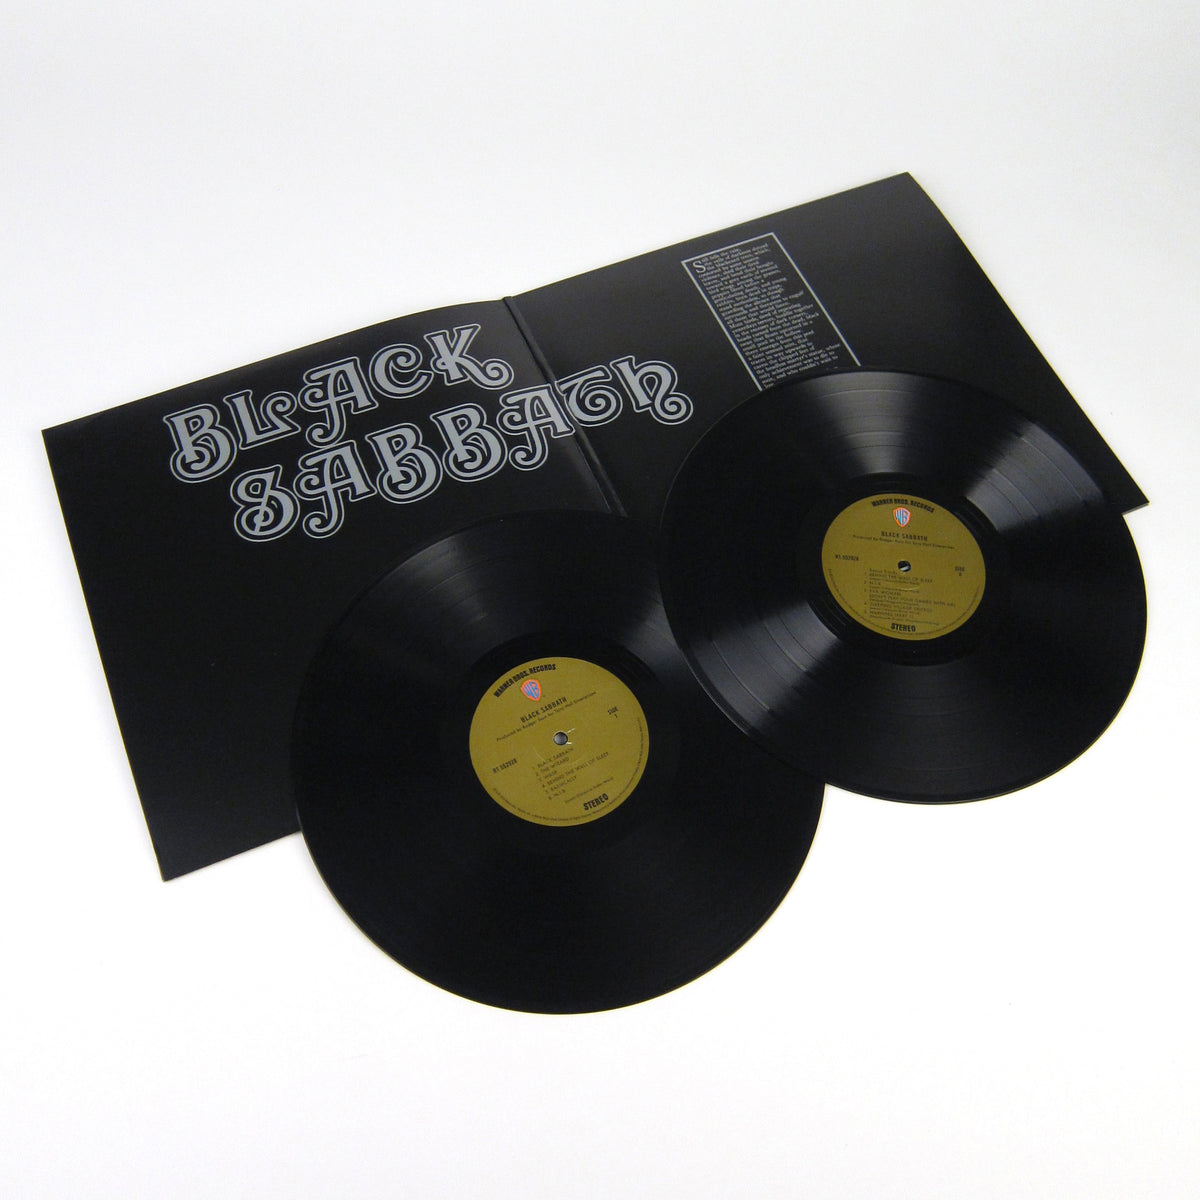 Black Sabbath: Black Sabbath (180g) Vinyl 2LP